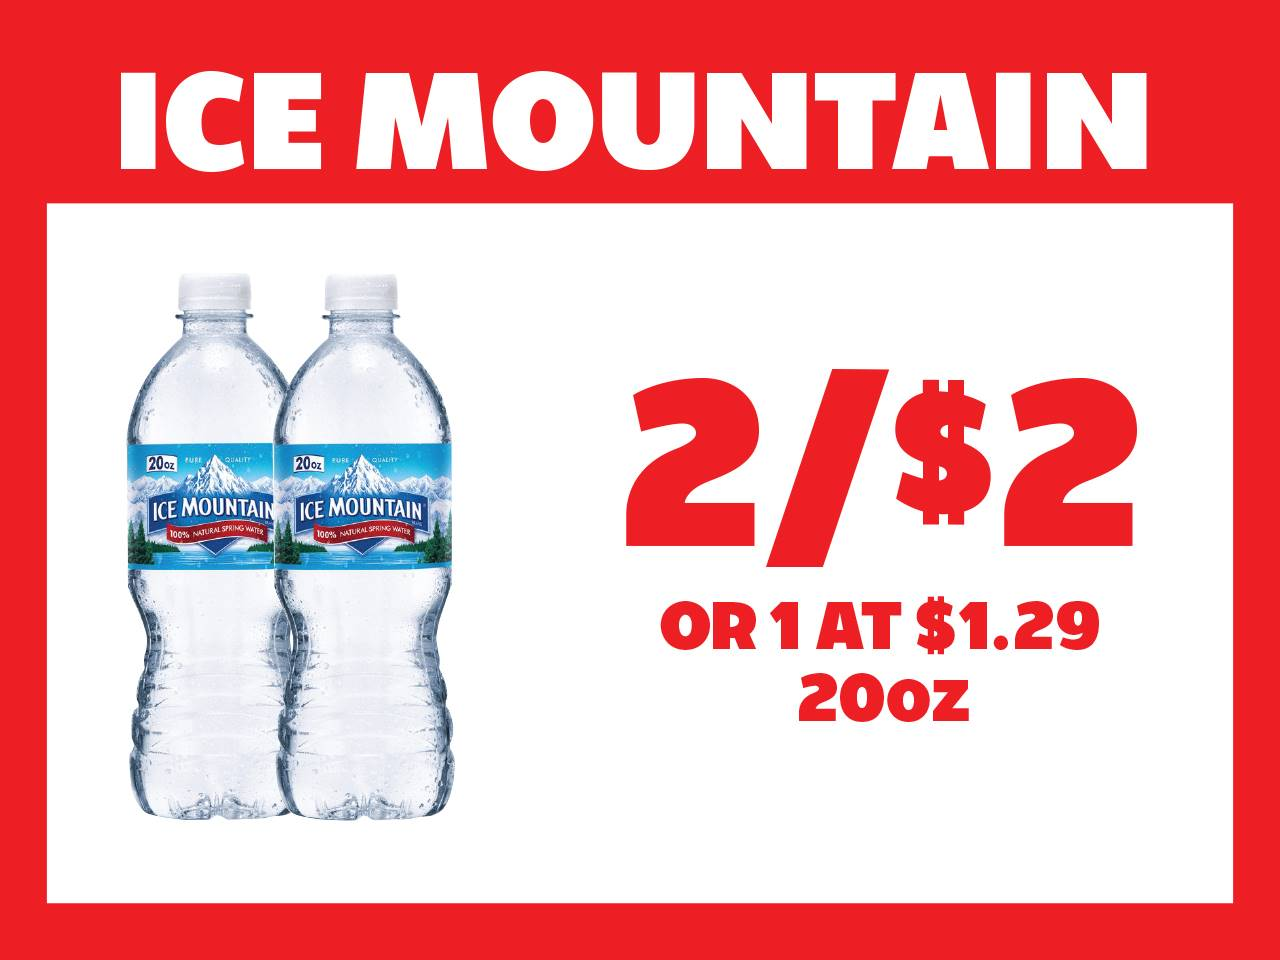 20oz Ice Mountain 2 for $2 or 1 at $1.29